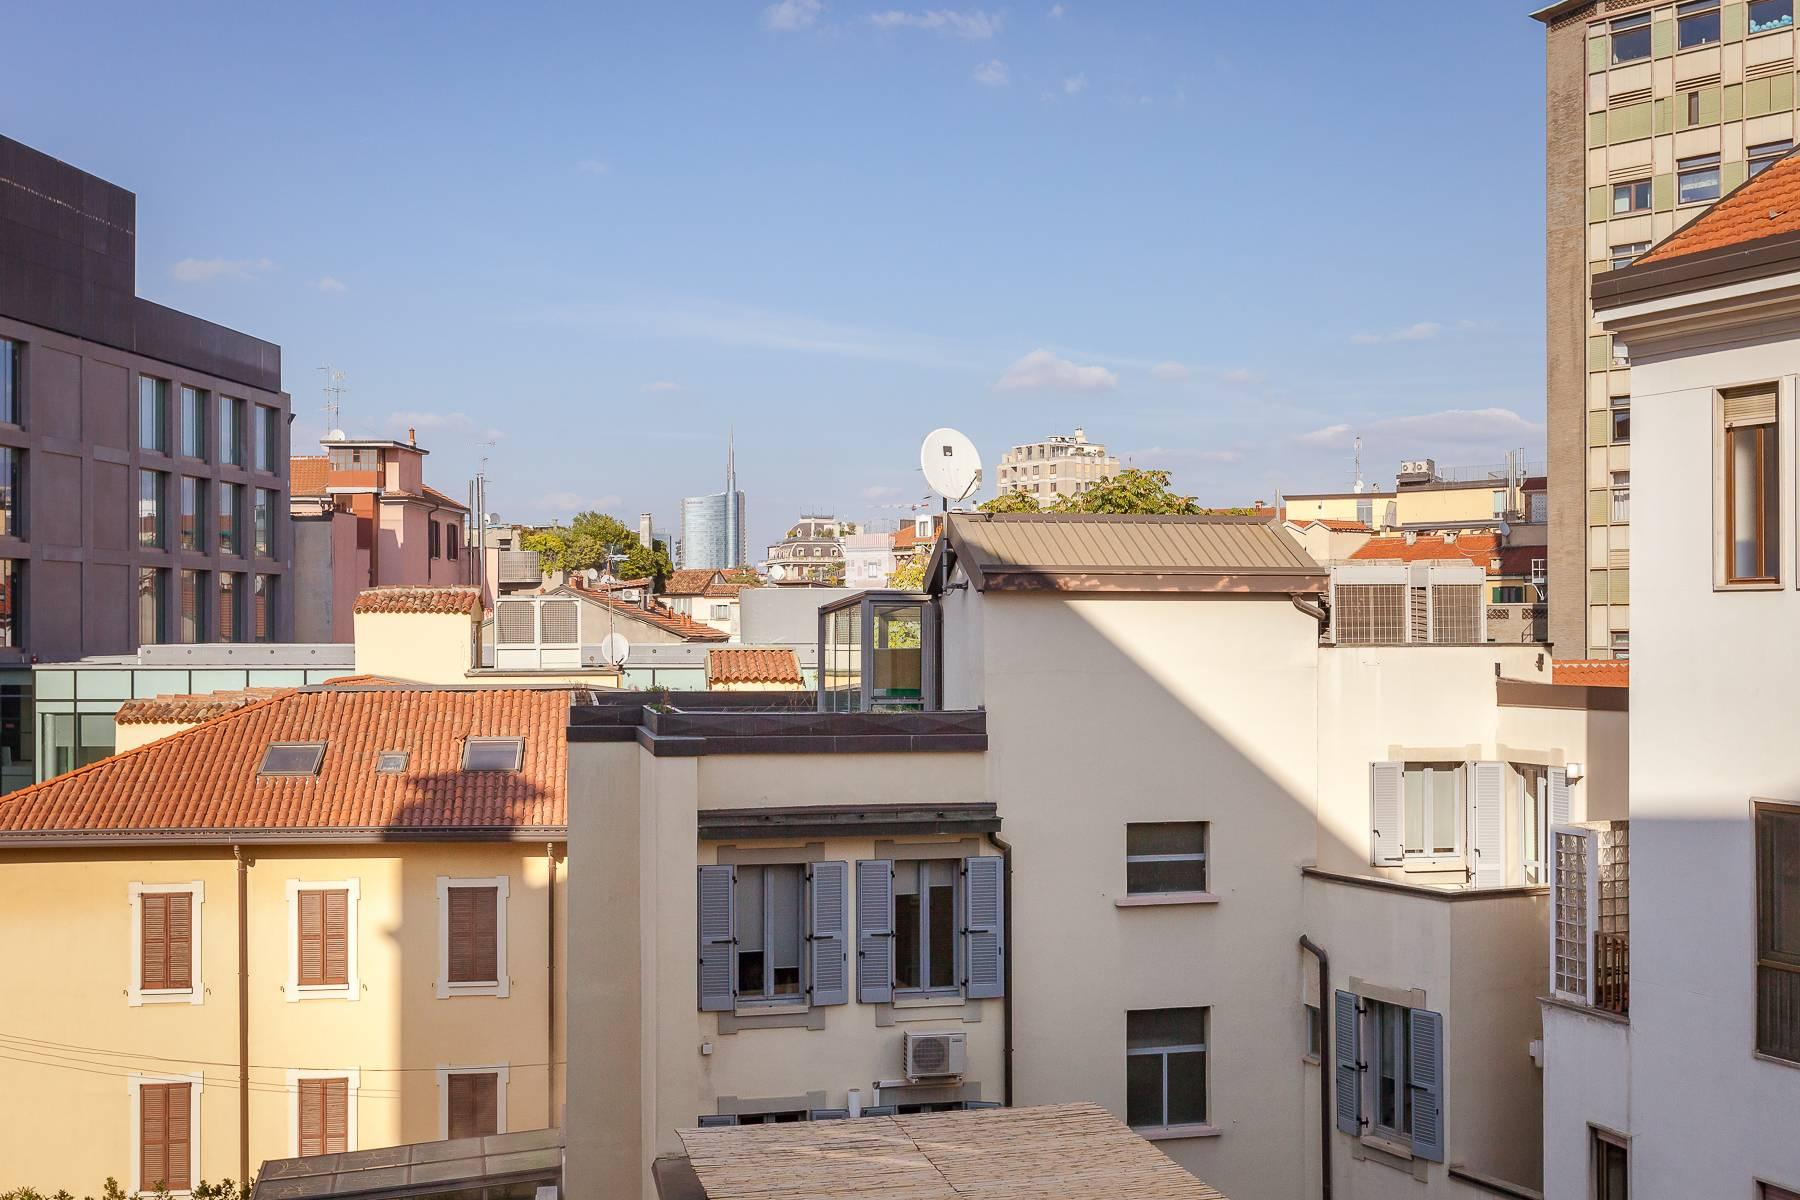 Bright, renovated two-bedroom apartment a stone's throw from the Duomo - 3